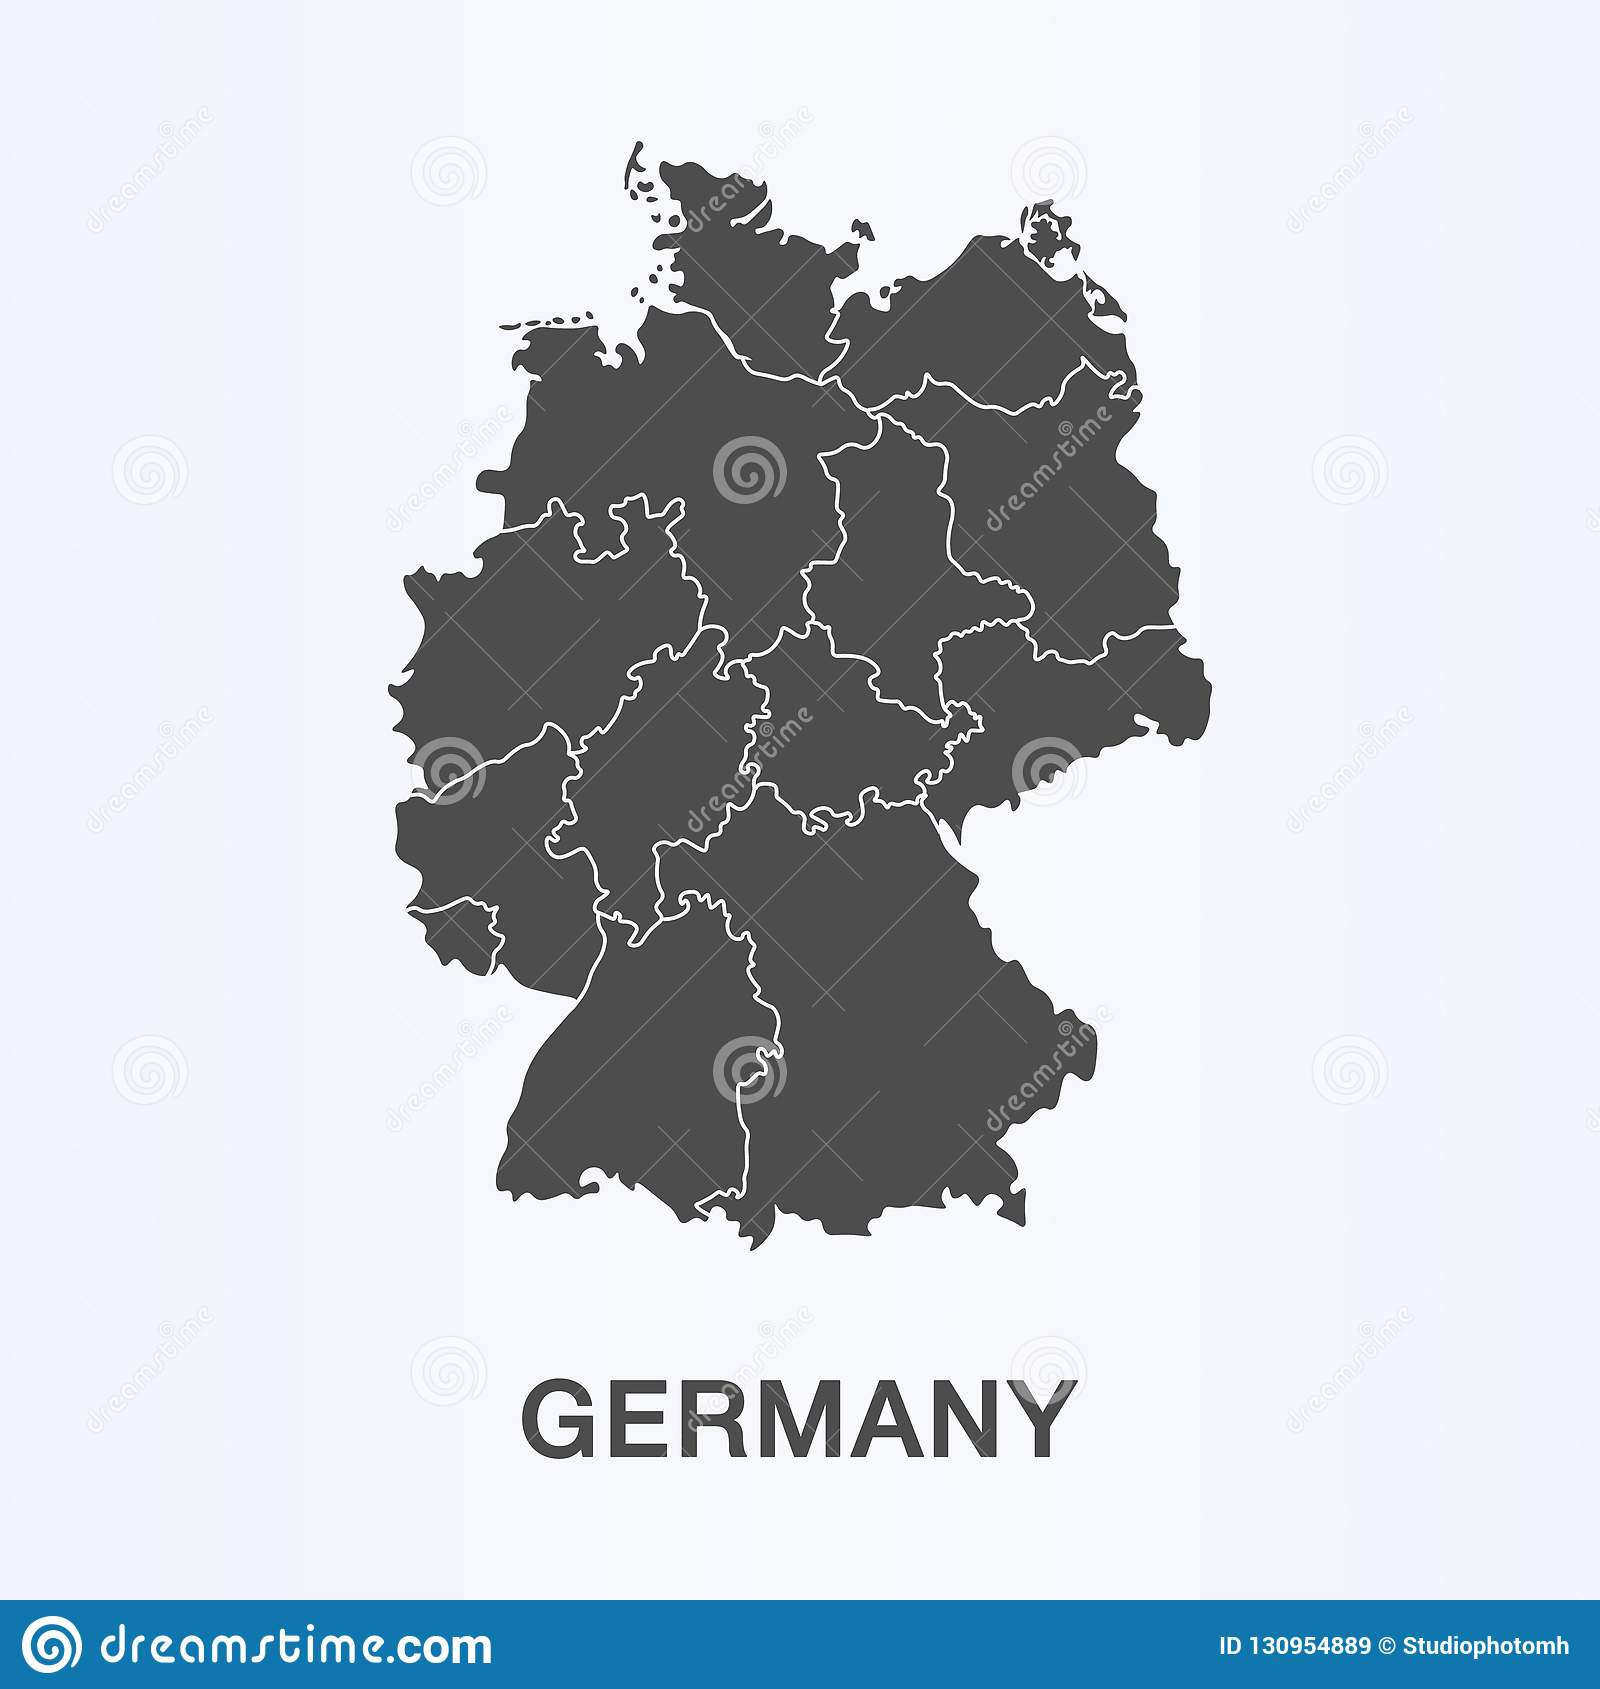 Country Of Germany Map.Germany Map Vector European German Country Icon Stock Vector